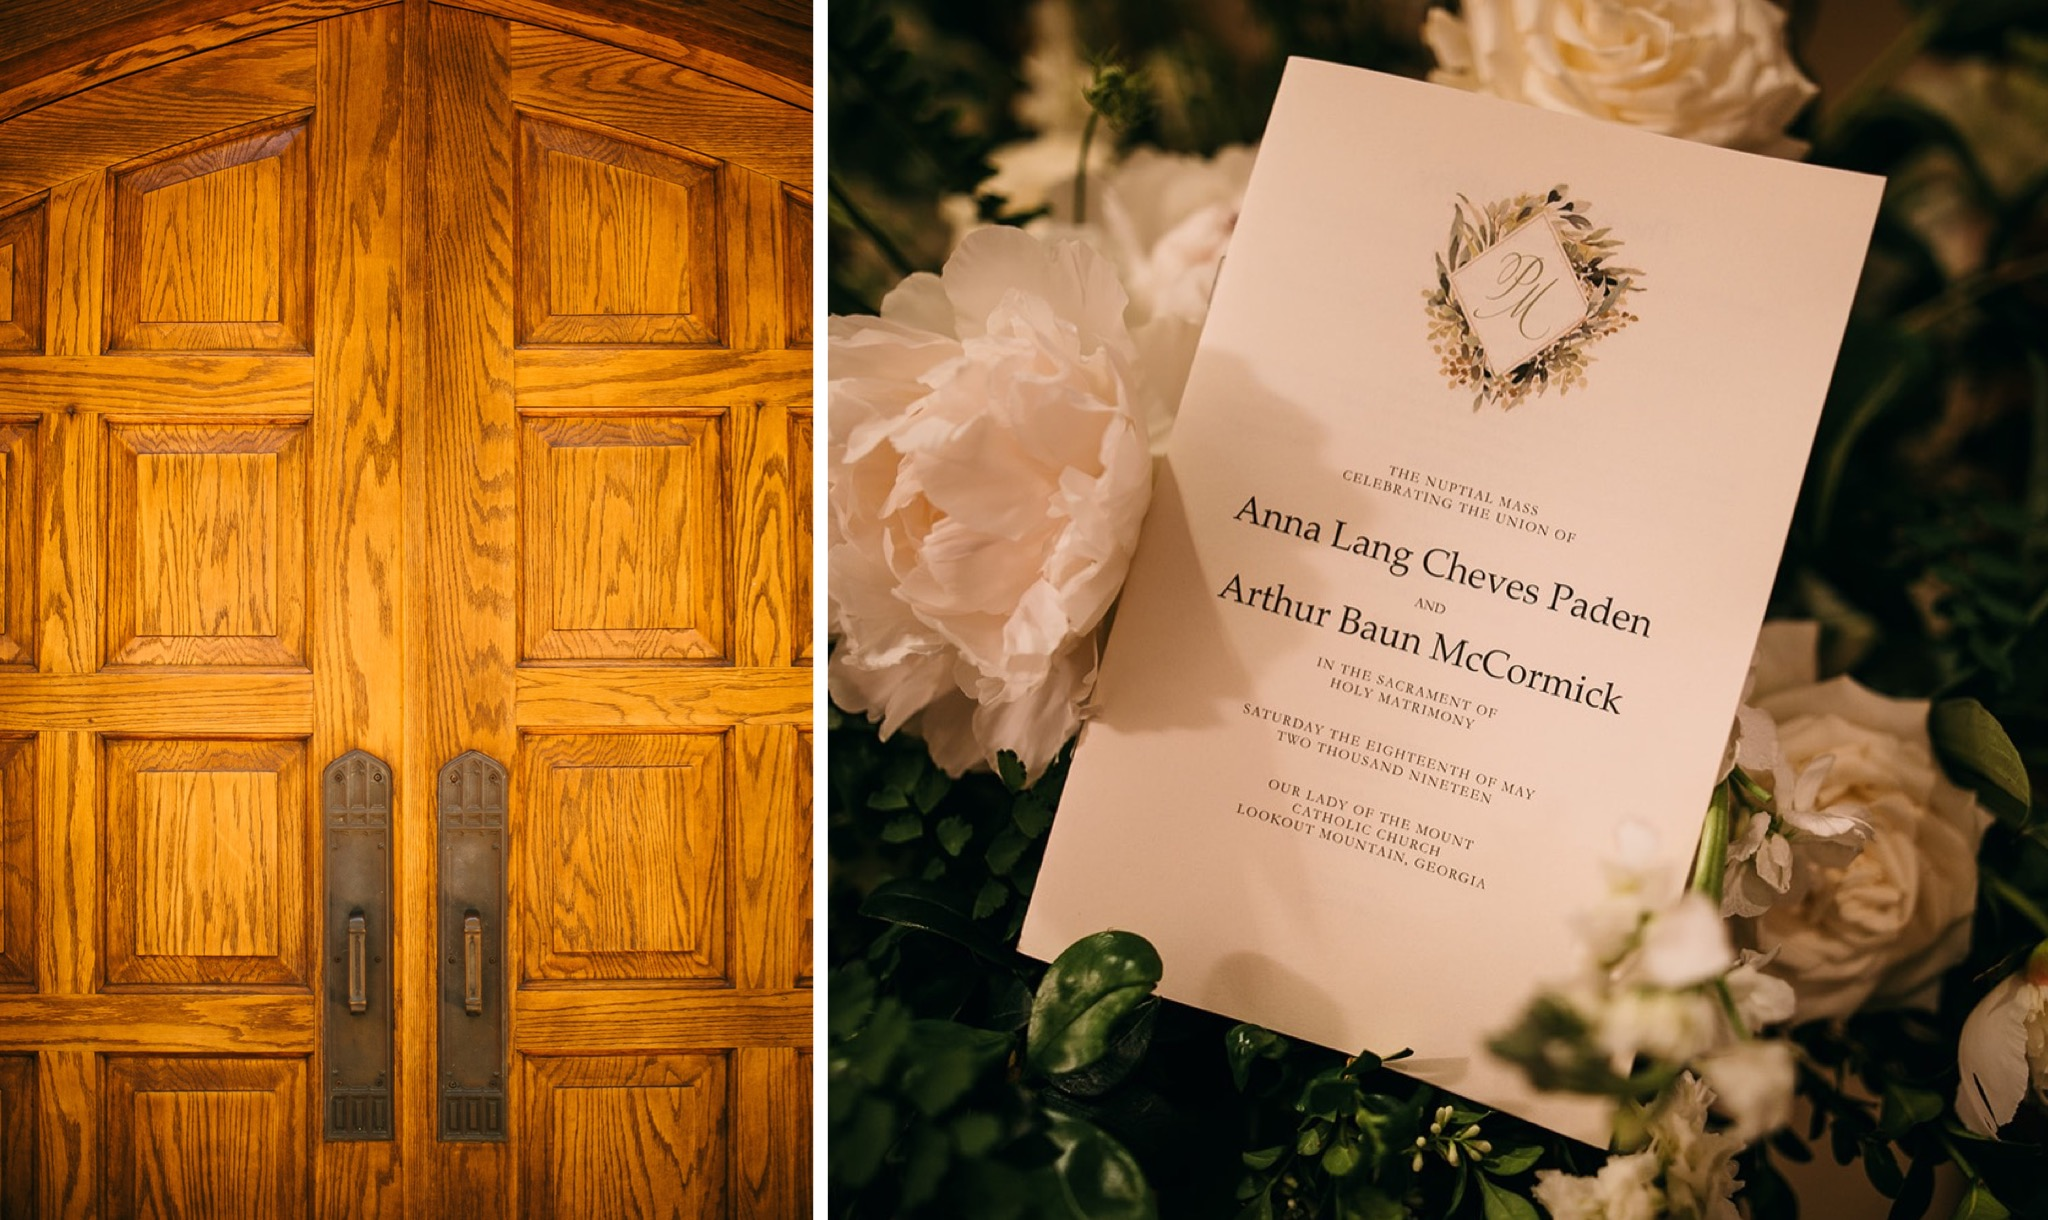 wooden doors of church and classic printed wedding invitation